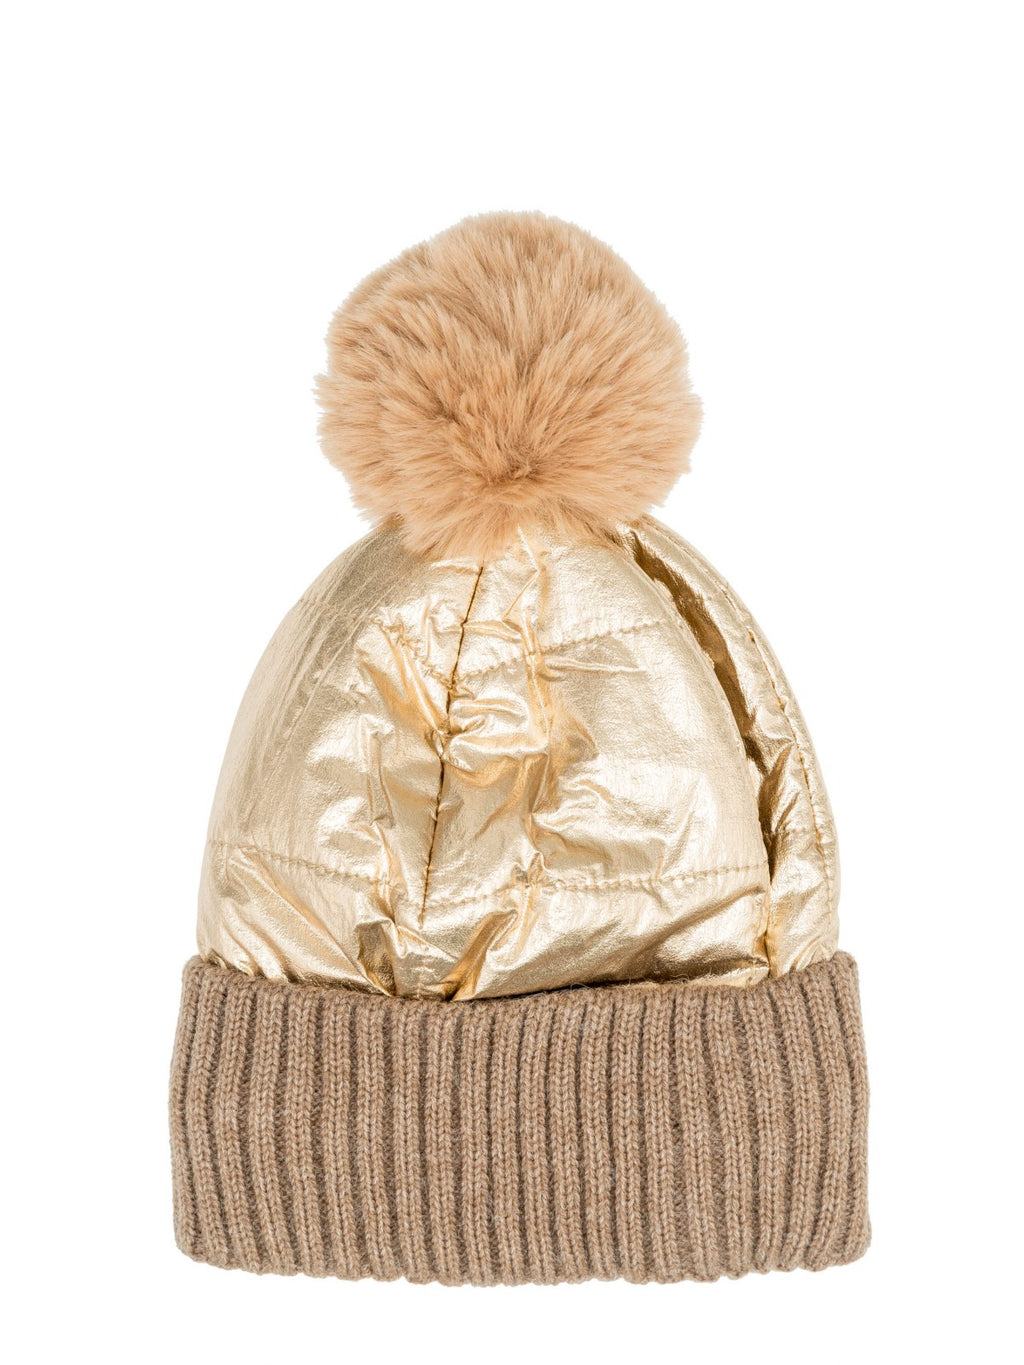 Two toned beanie in Camel